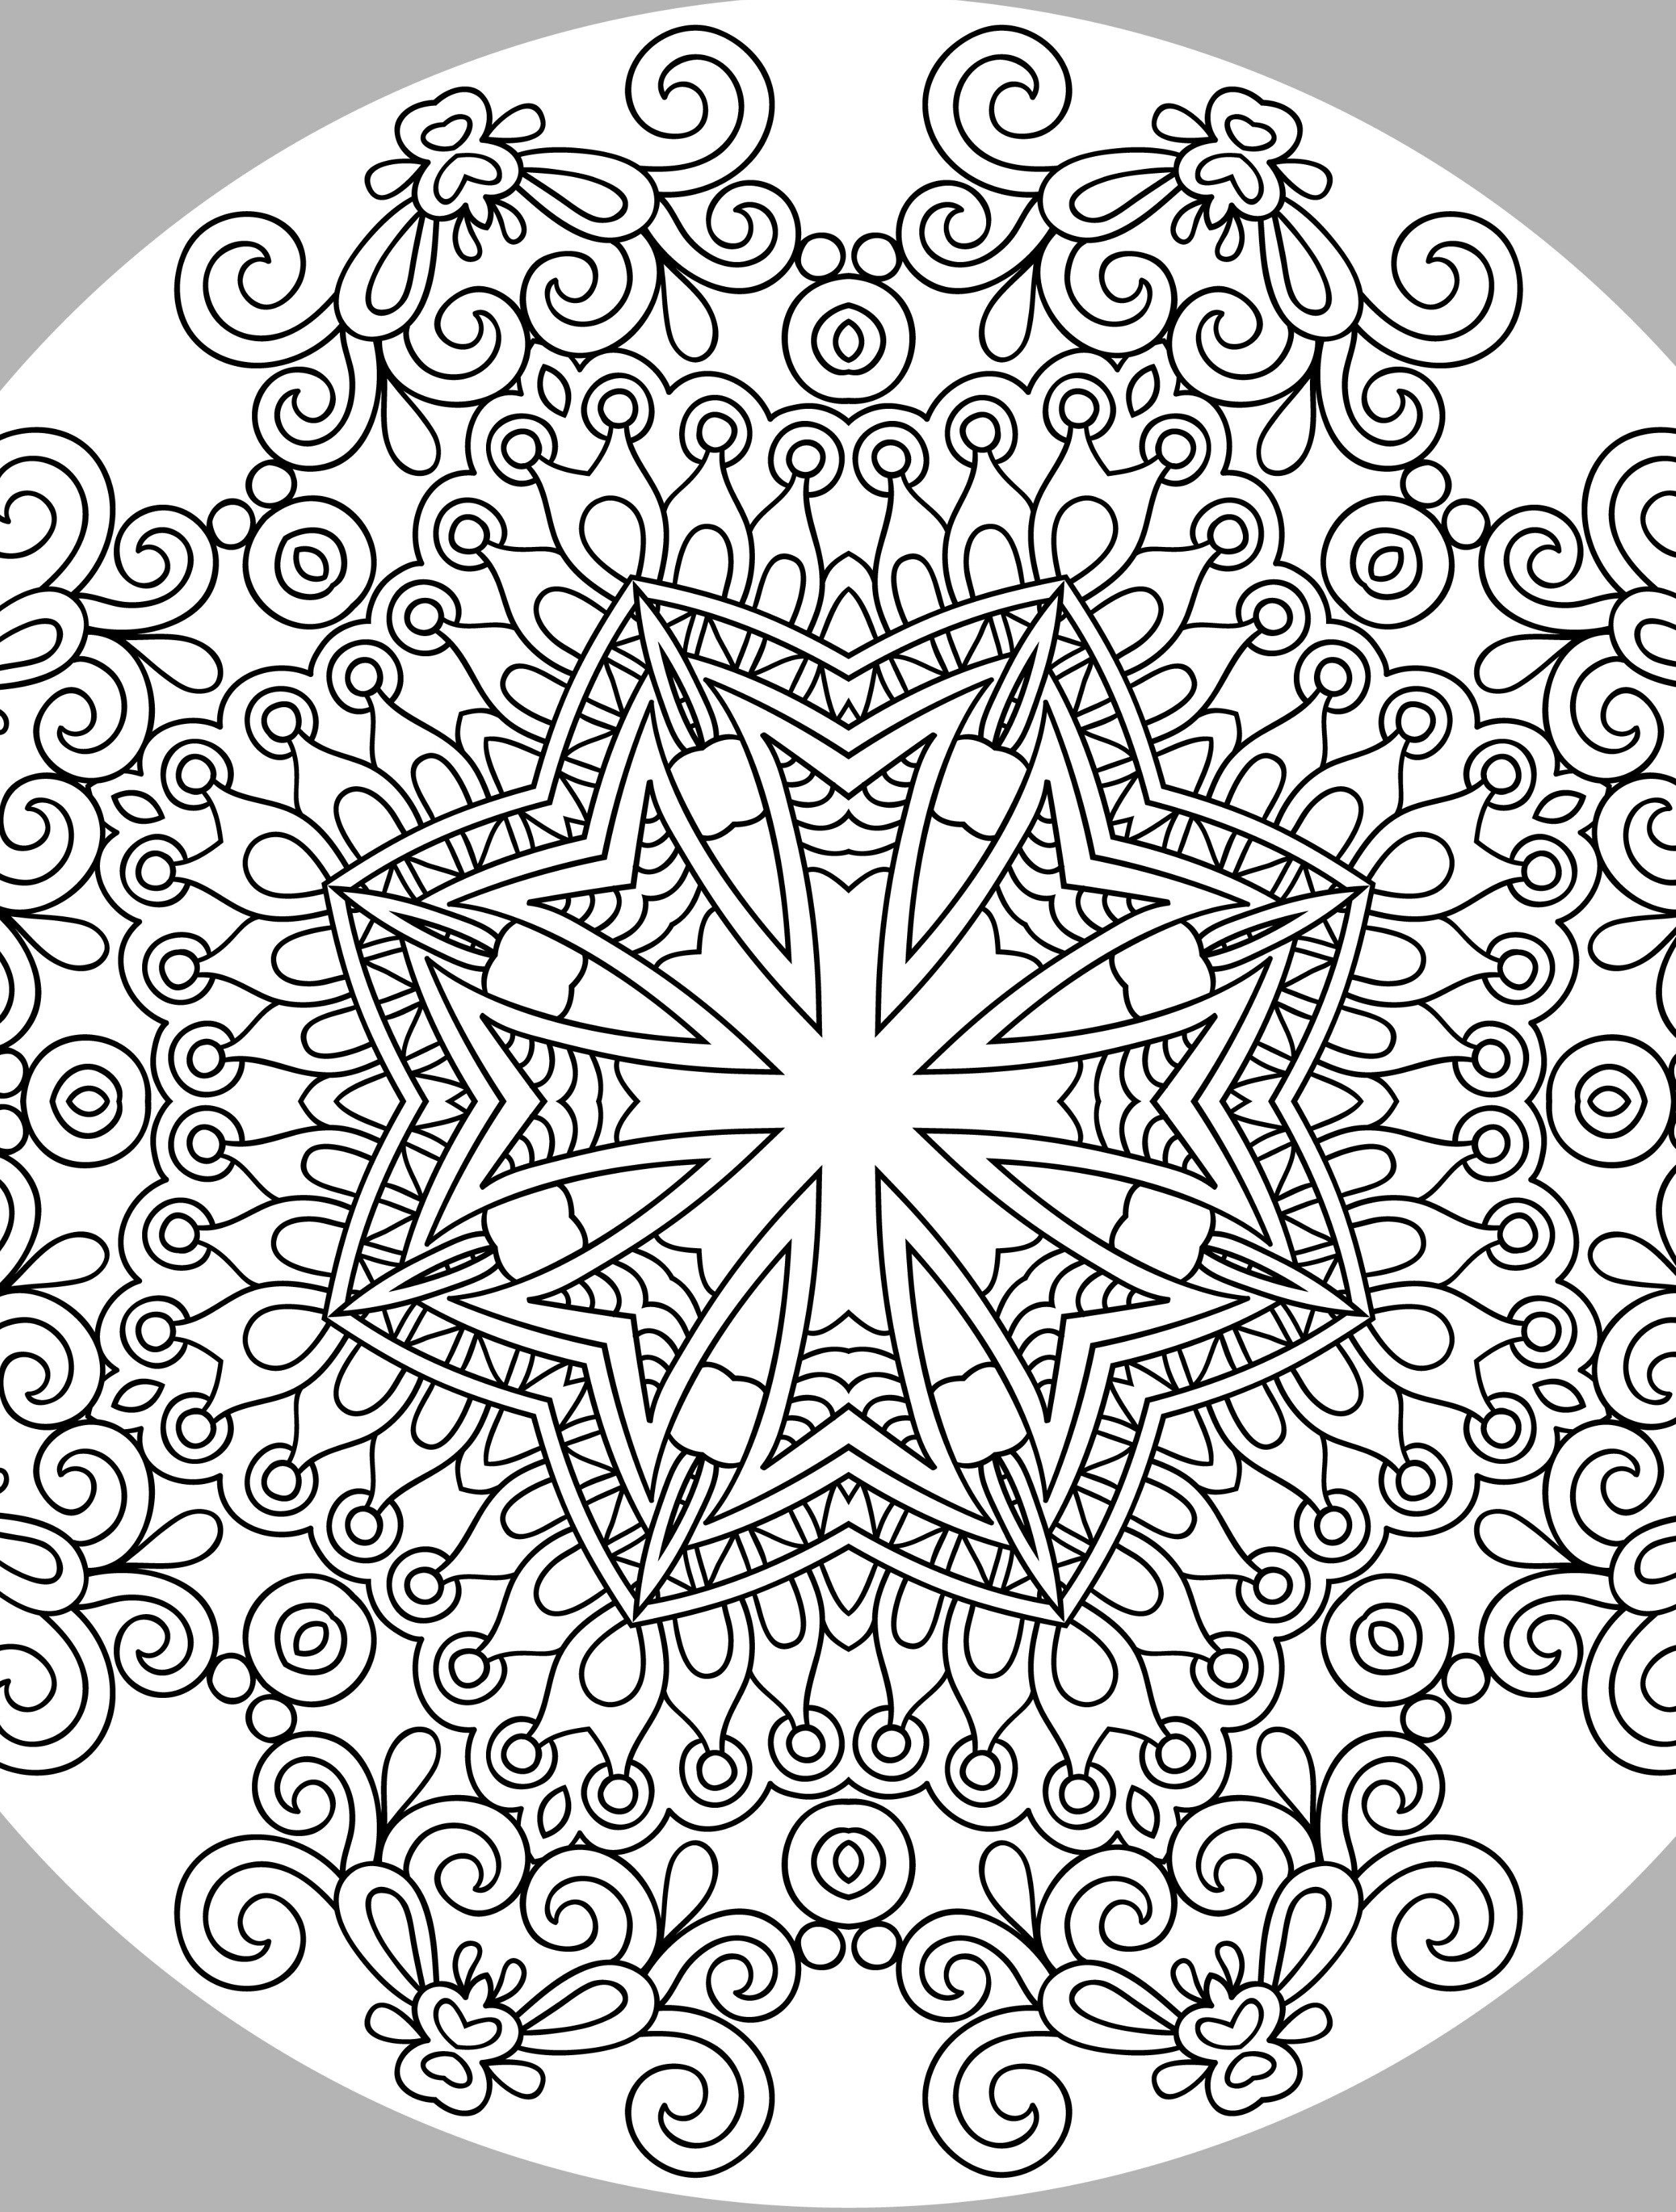 10 Free Printable Holiday Adult Coloring Pages | Coloring | Adult - Free Printable Holiday Coloring Pages